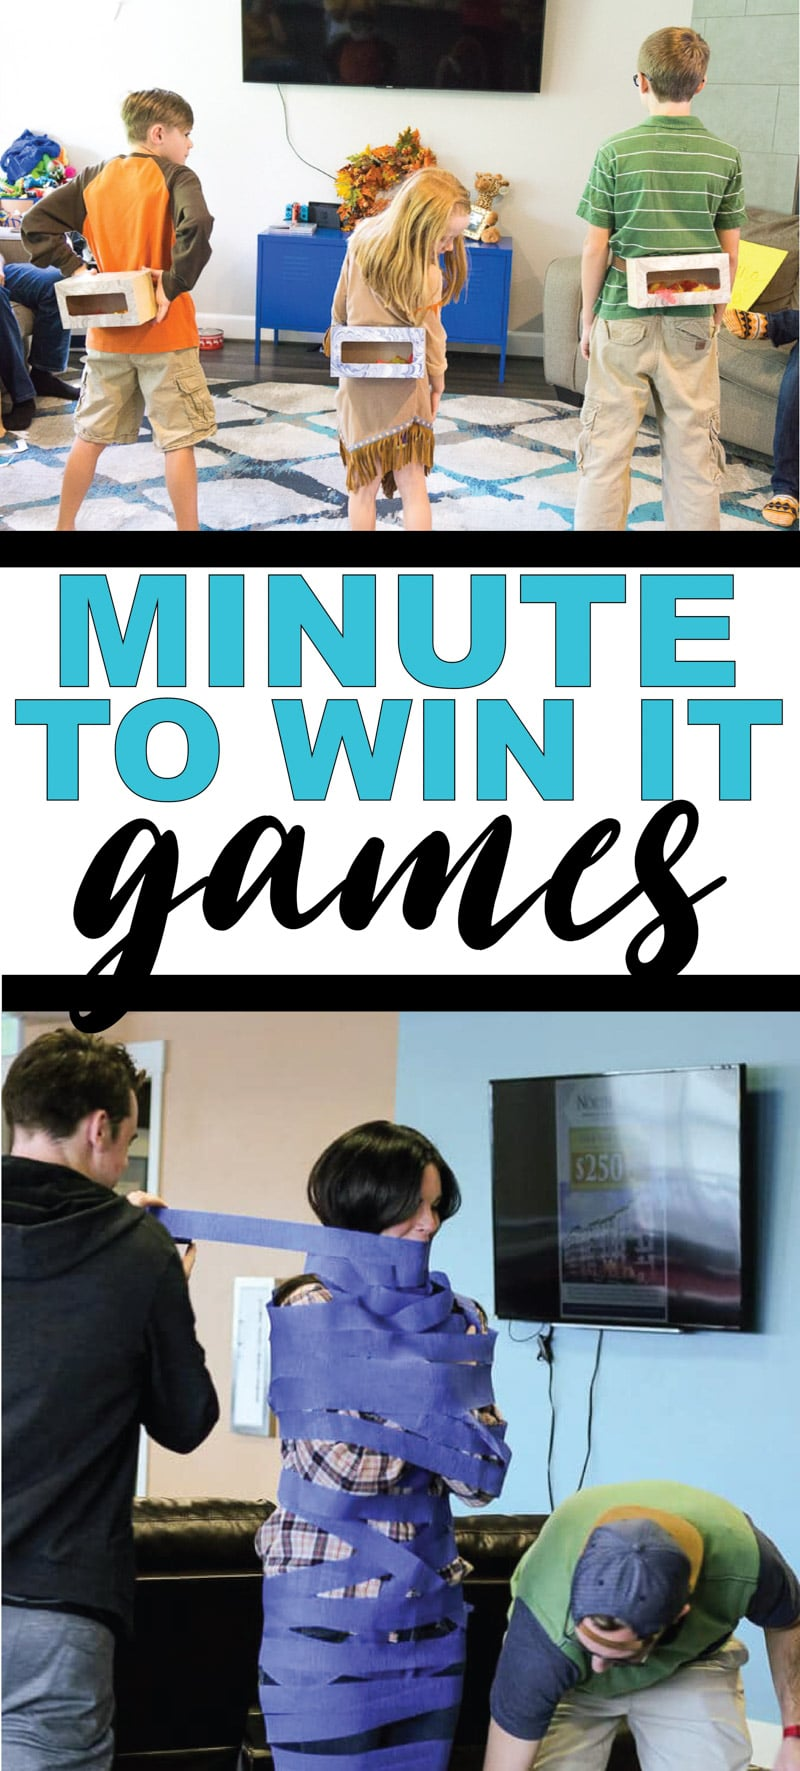 The best minute to win it games for kids, for teens, or even for adults! Over 200+ fun games that are perfect for a family reunion, for school, for school parties, and more! Easy games, fun team games, and more!